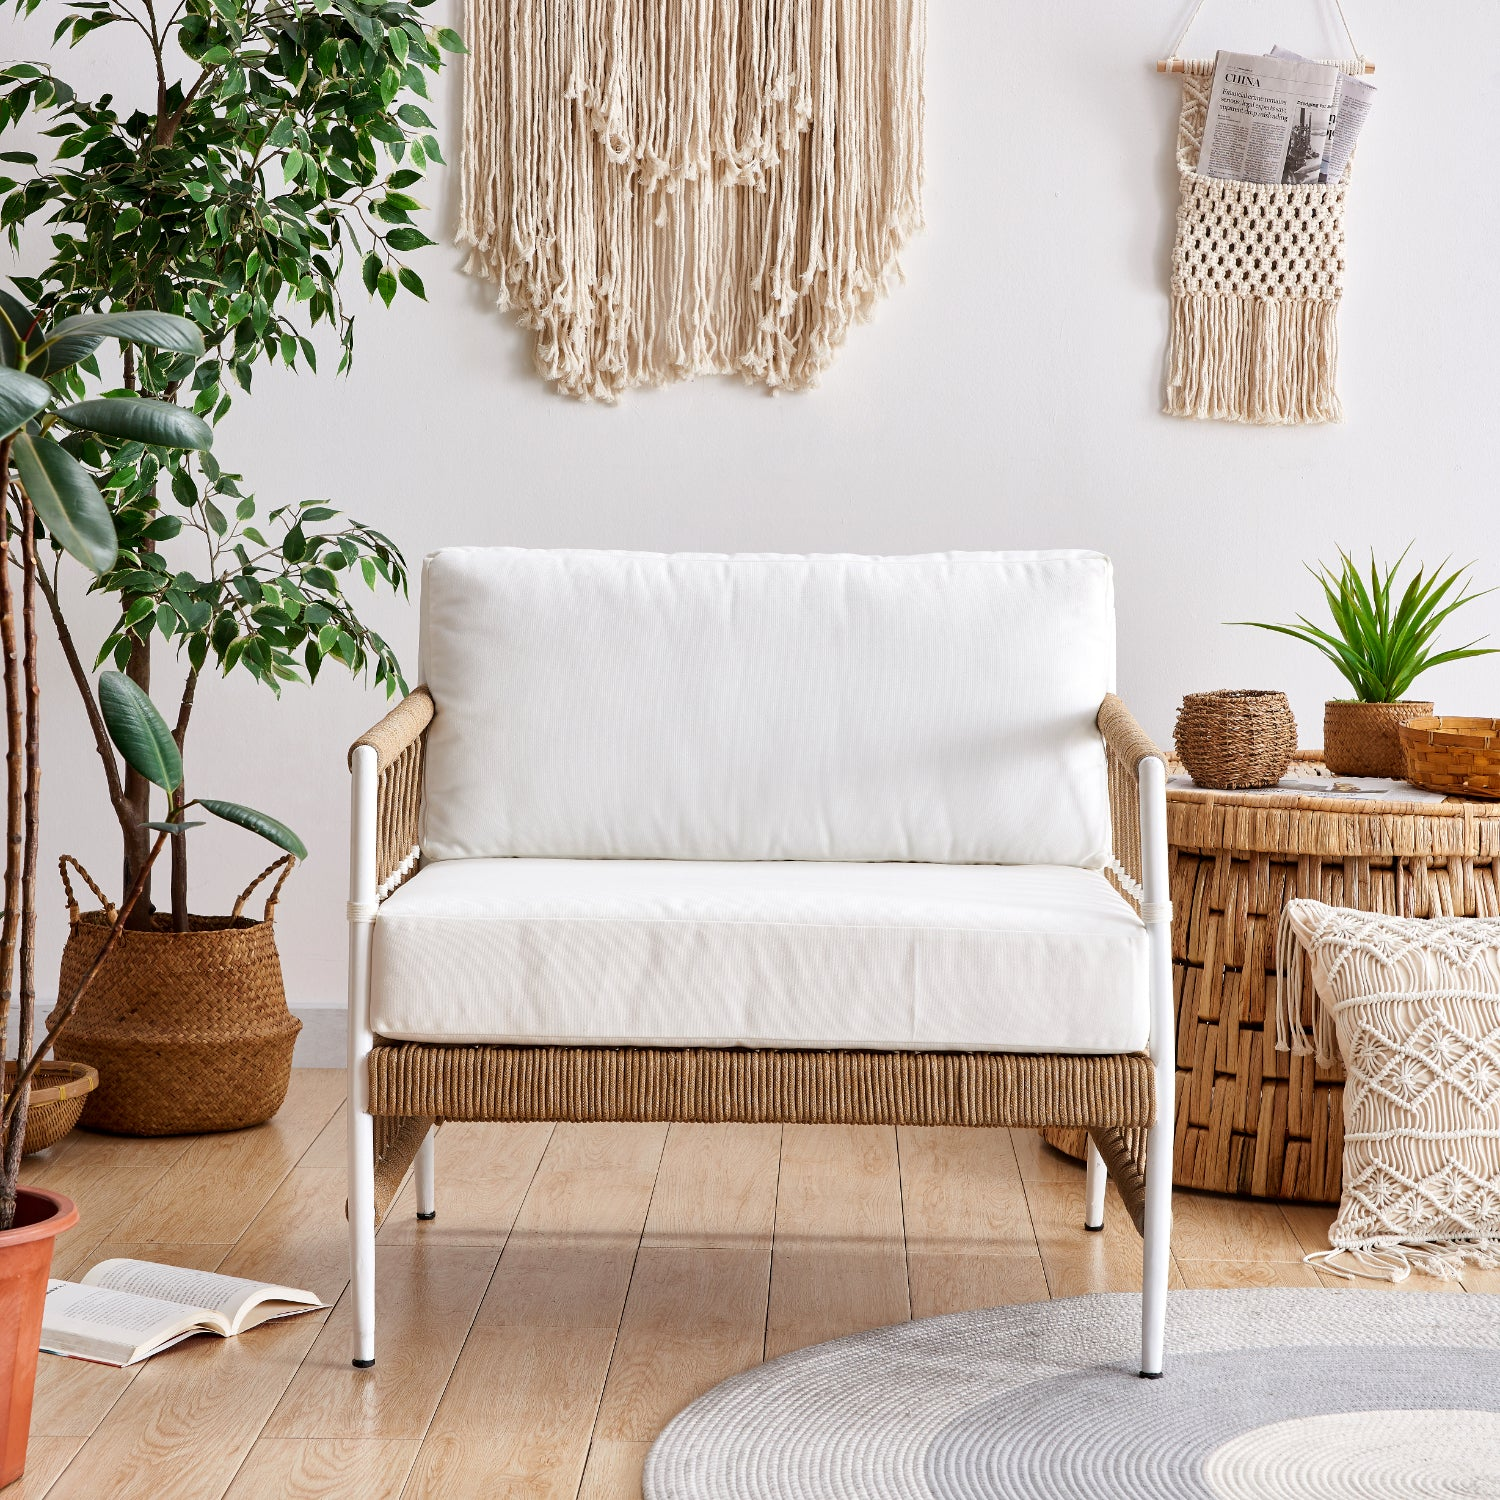 light wicker sofa styled with bolster pillows, soft throw blanket, and macrame decor. Set in an earthy room with natural fiber decor and hardwood floors.